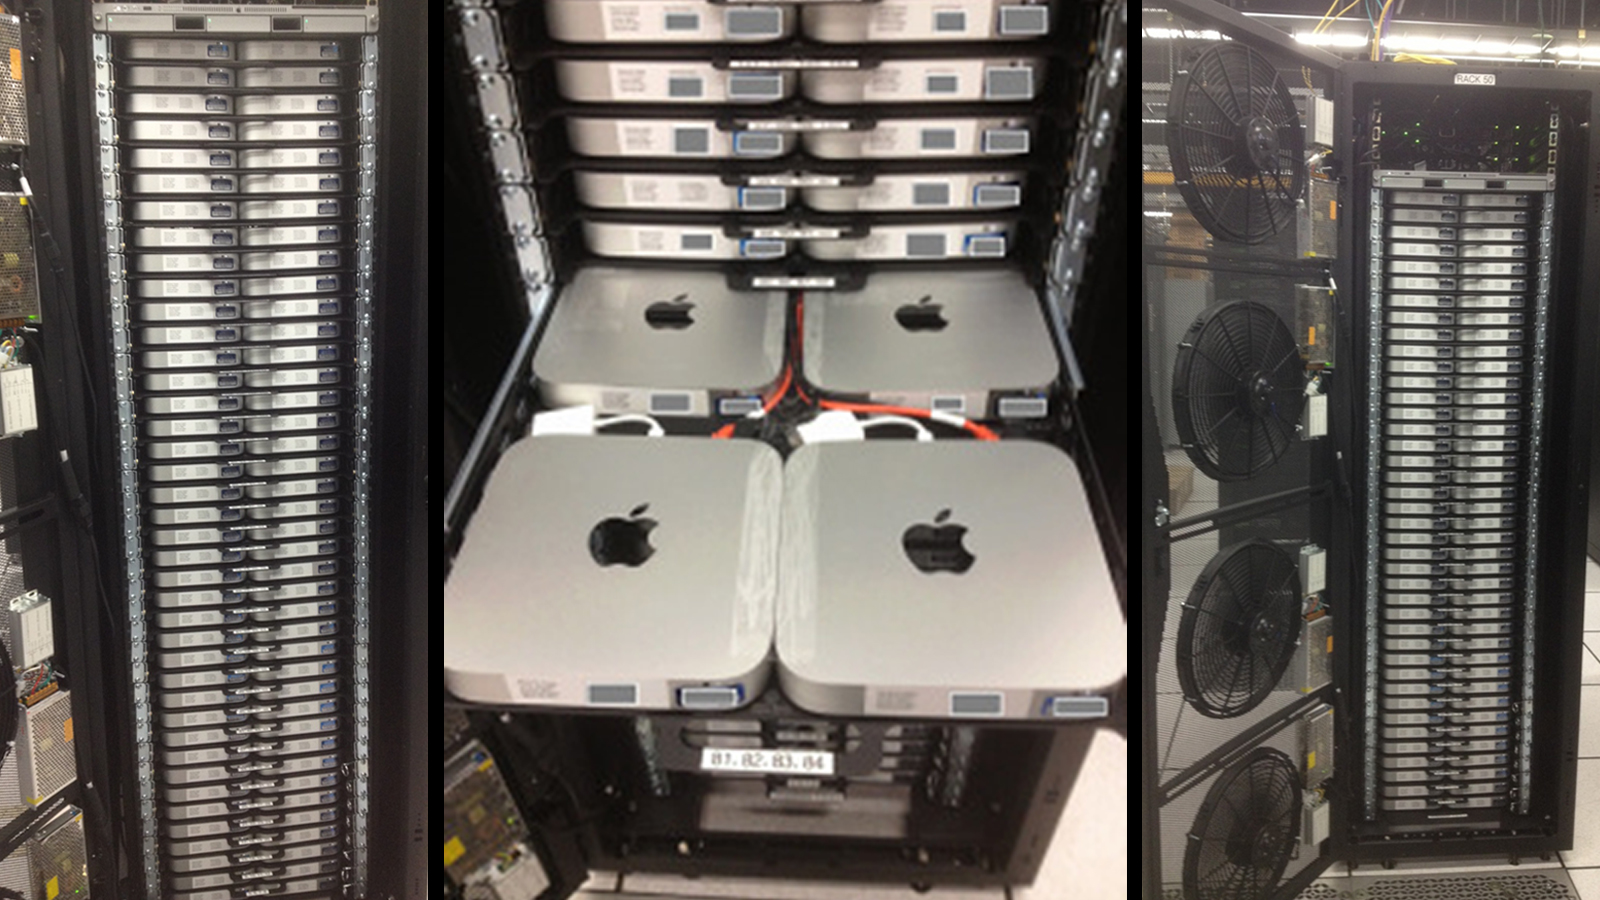 Click here to read This Custom Datacenter Rack Has 160 Mac Minis Crammed Inside of It